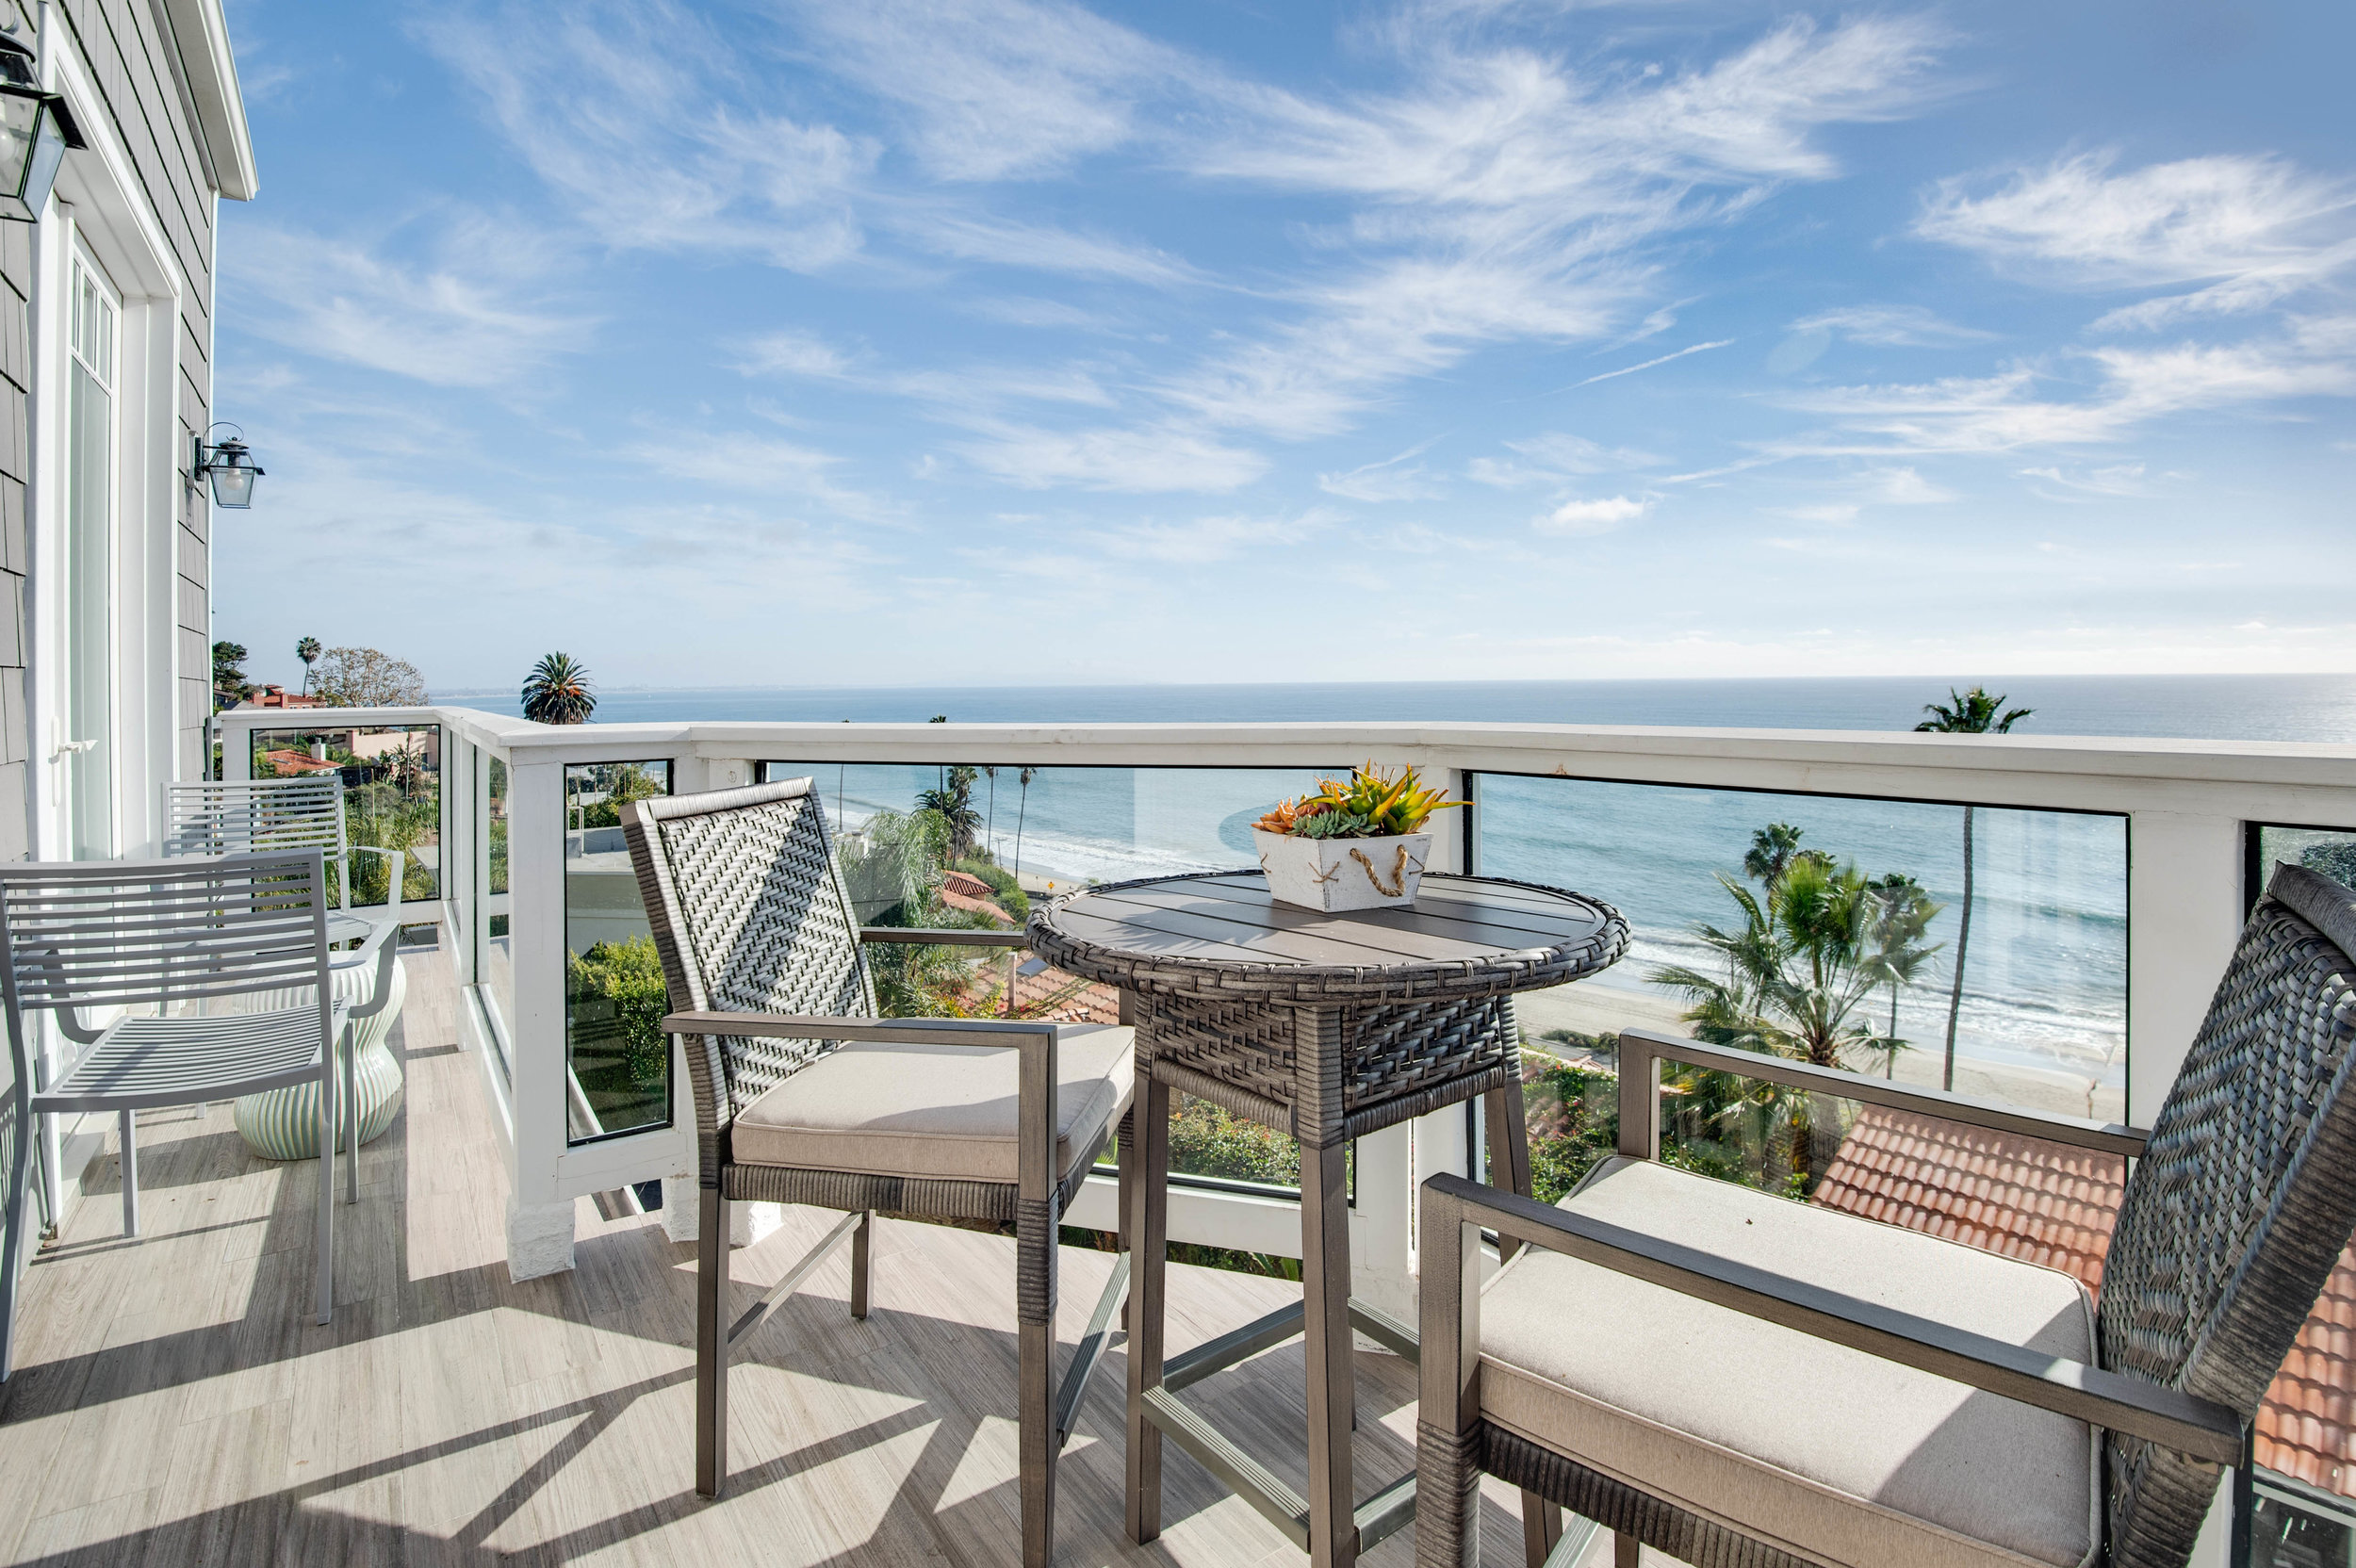 001 Deck Ocean View 17819 Castellammare Drive Pacific Palisades For Sale Lease The Malibu Life Team Compass Luxury Real Estate.jpg